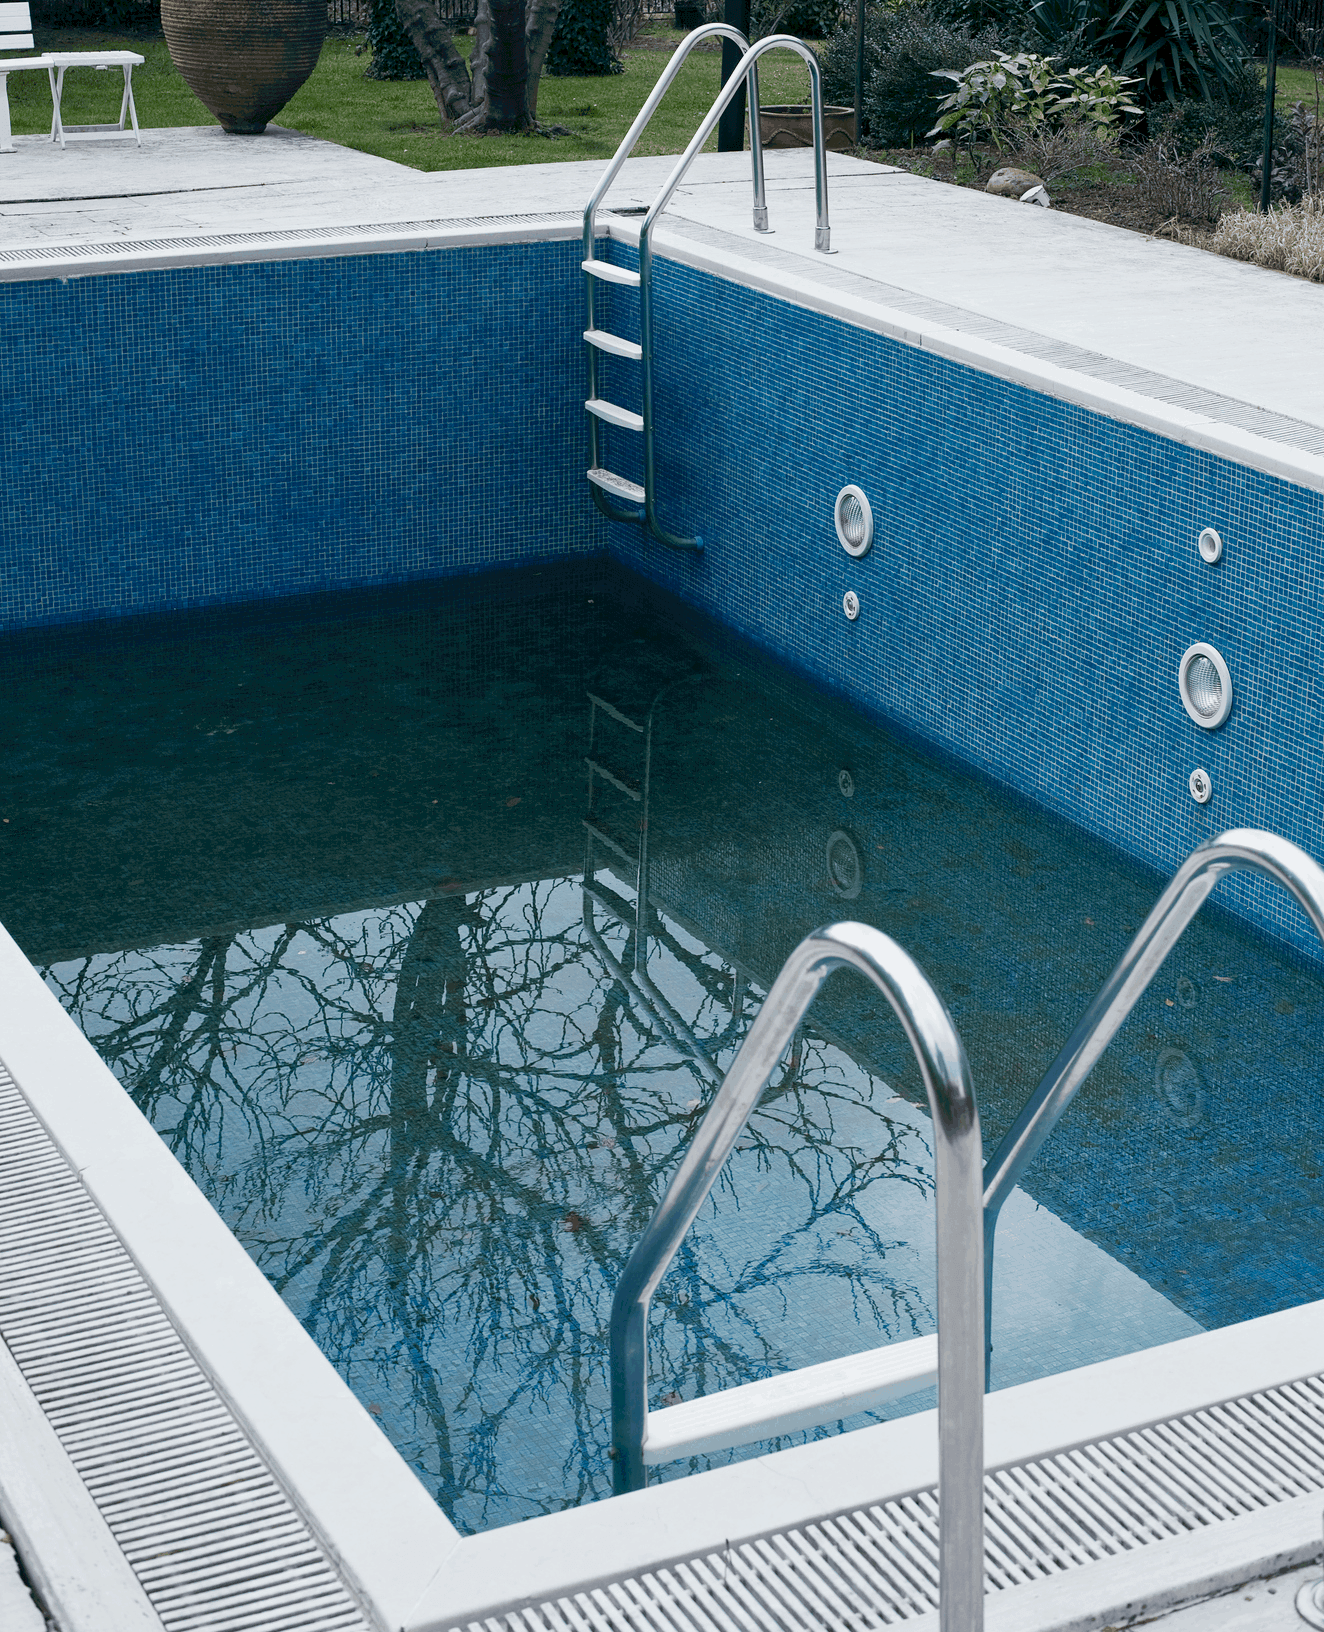 Pool leak detection Lilydale